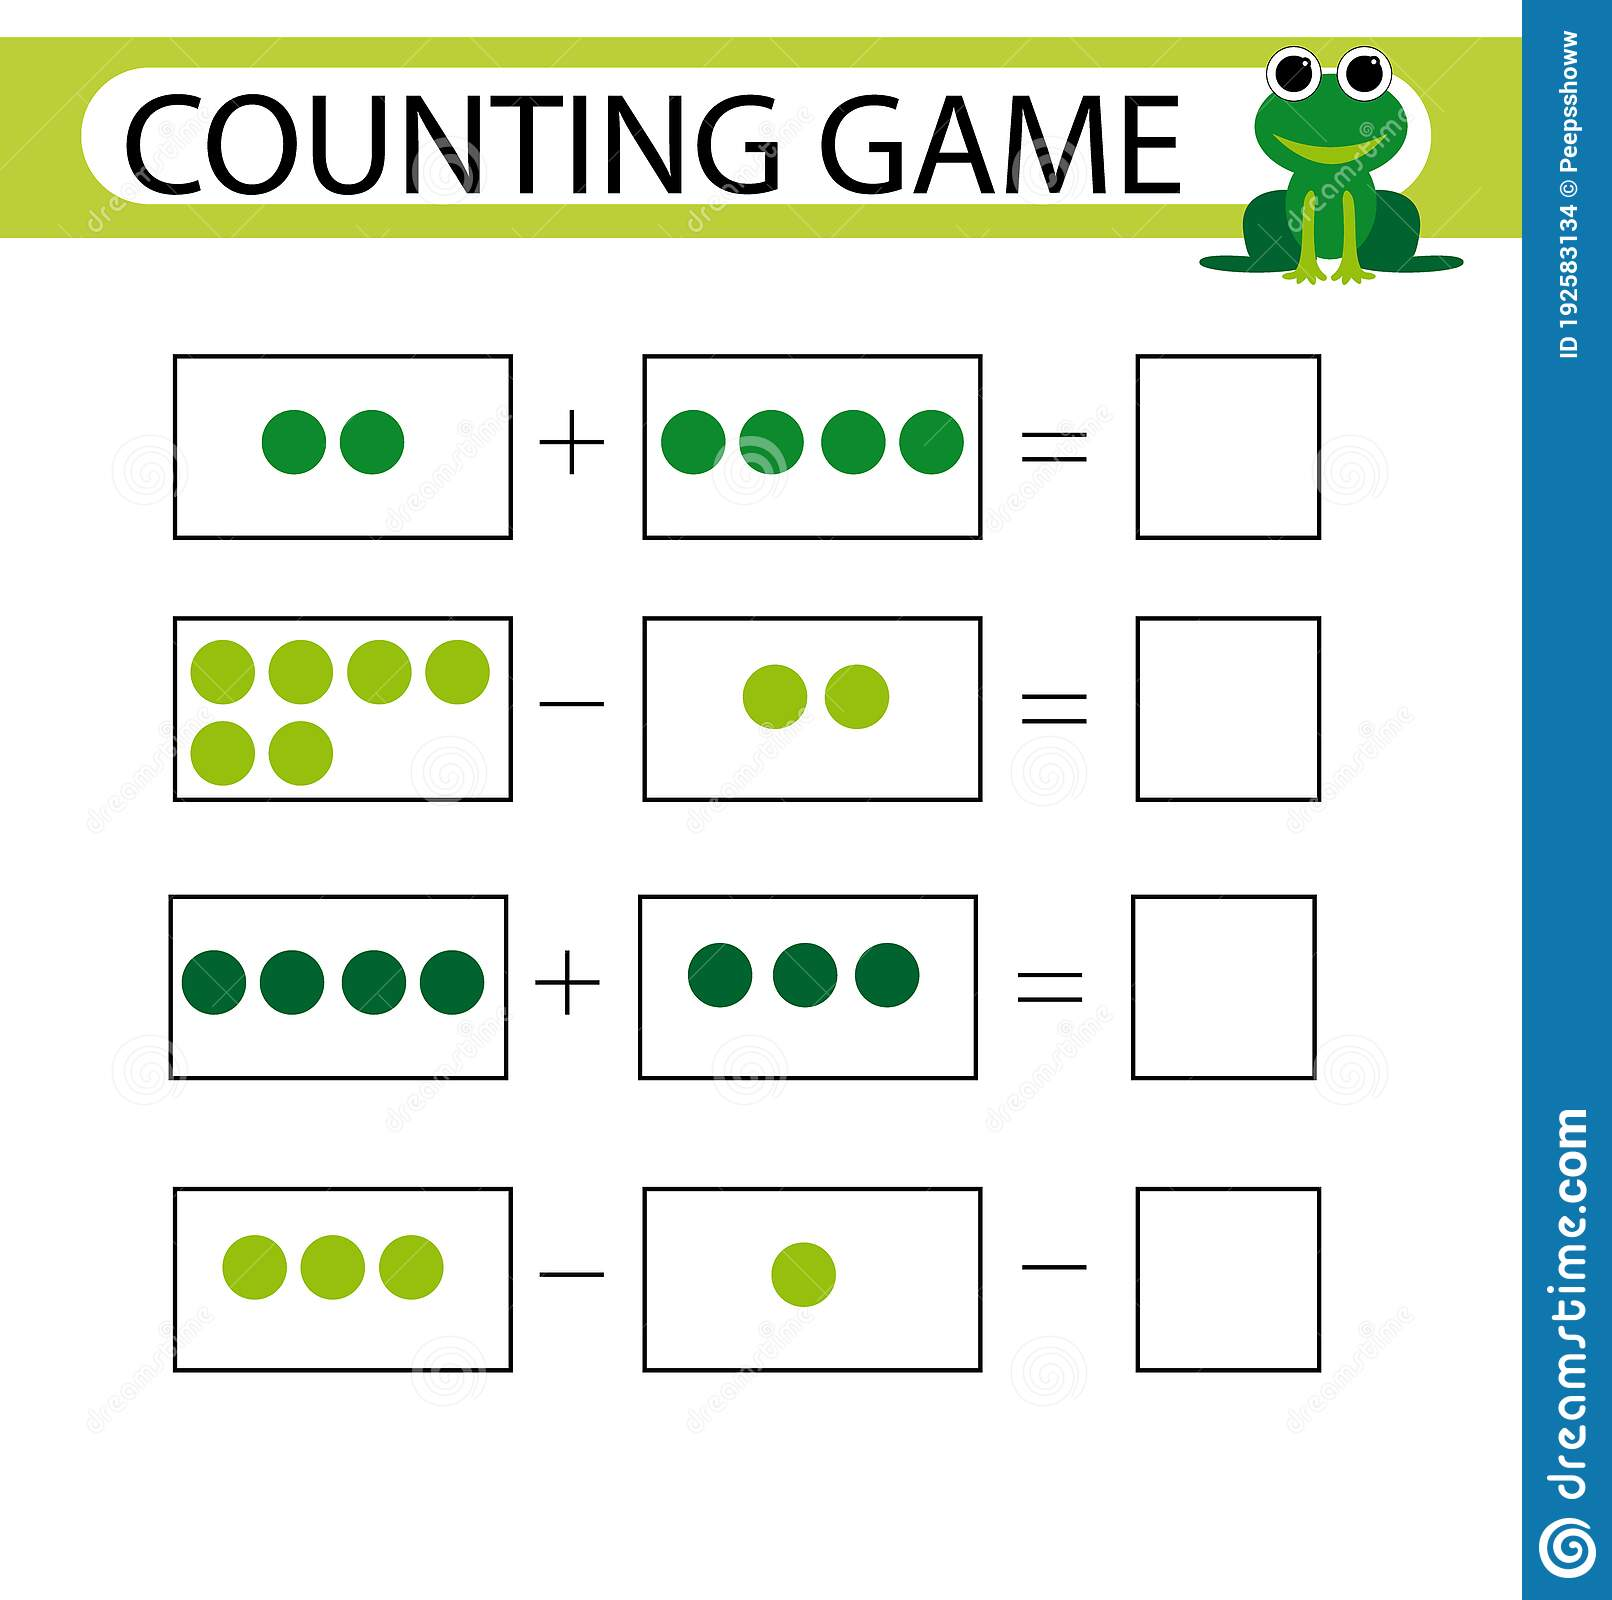 Counting Game Addition And Subtraction Task For Kids